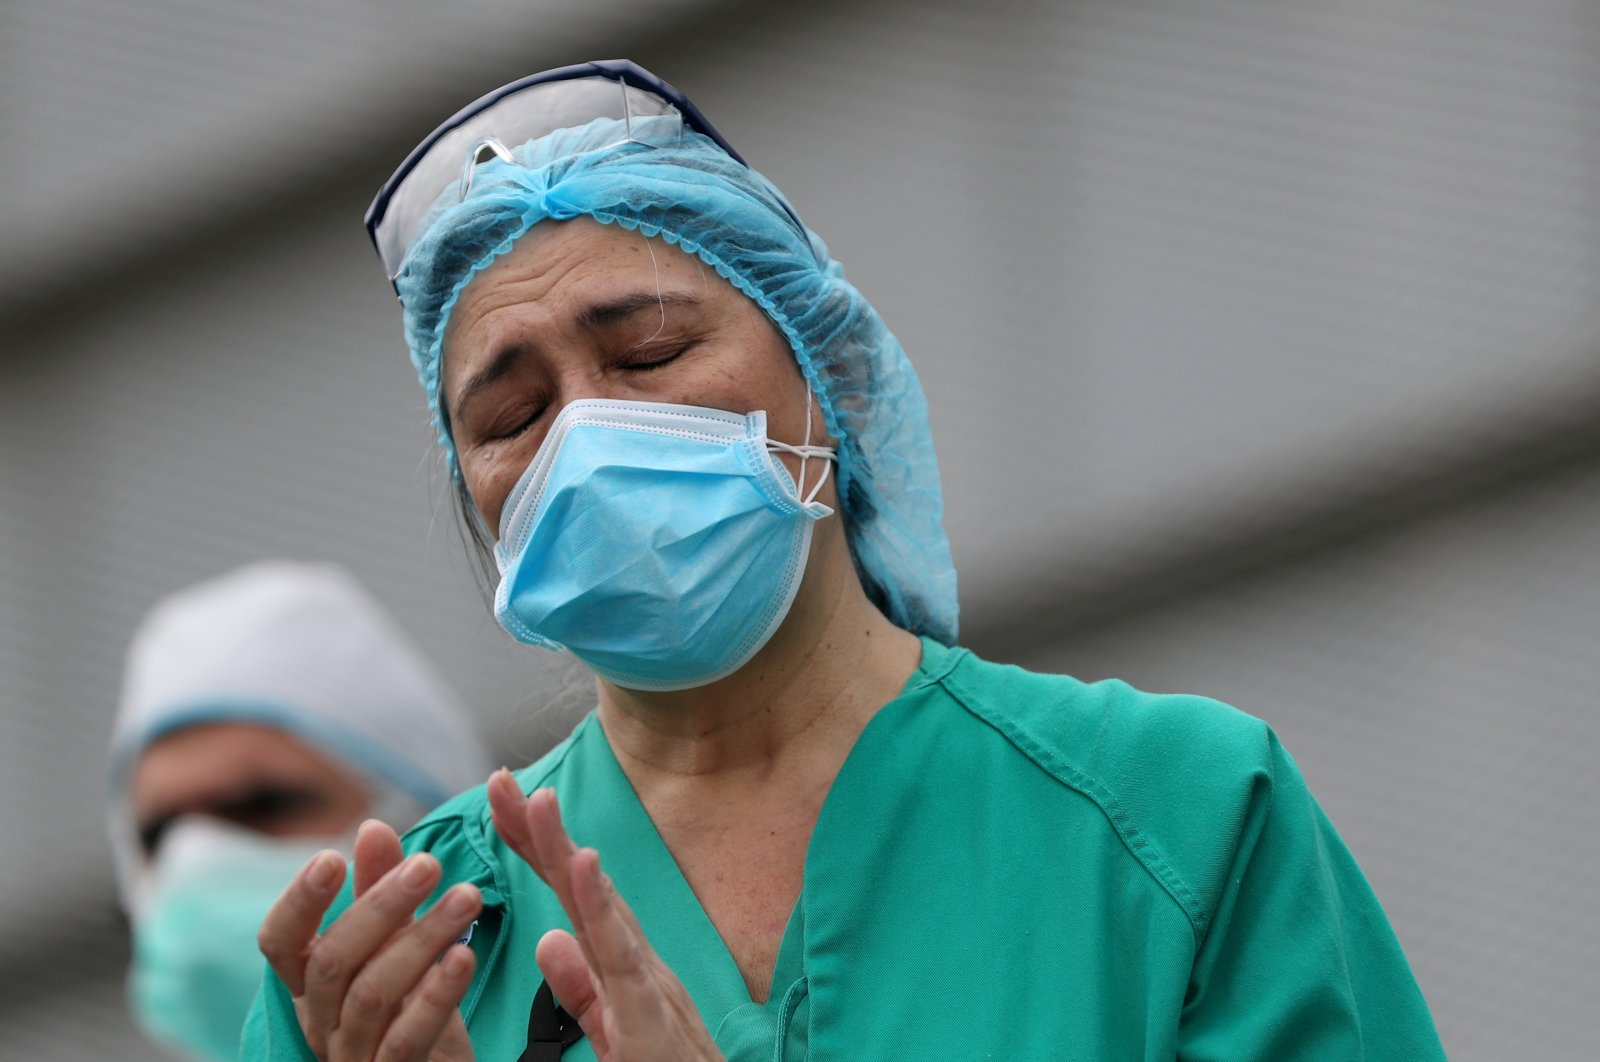 Staff from Segovia's General Hospital react during a minute of silence to remember a hospital worker, Segovia, Spain, April 23, 2020. (Reuters Photo)